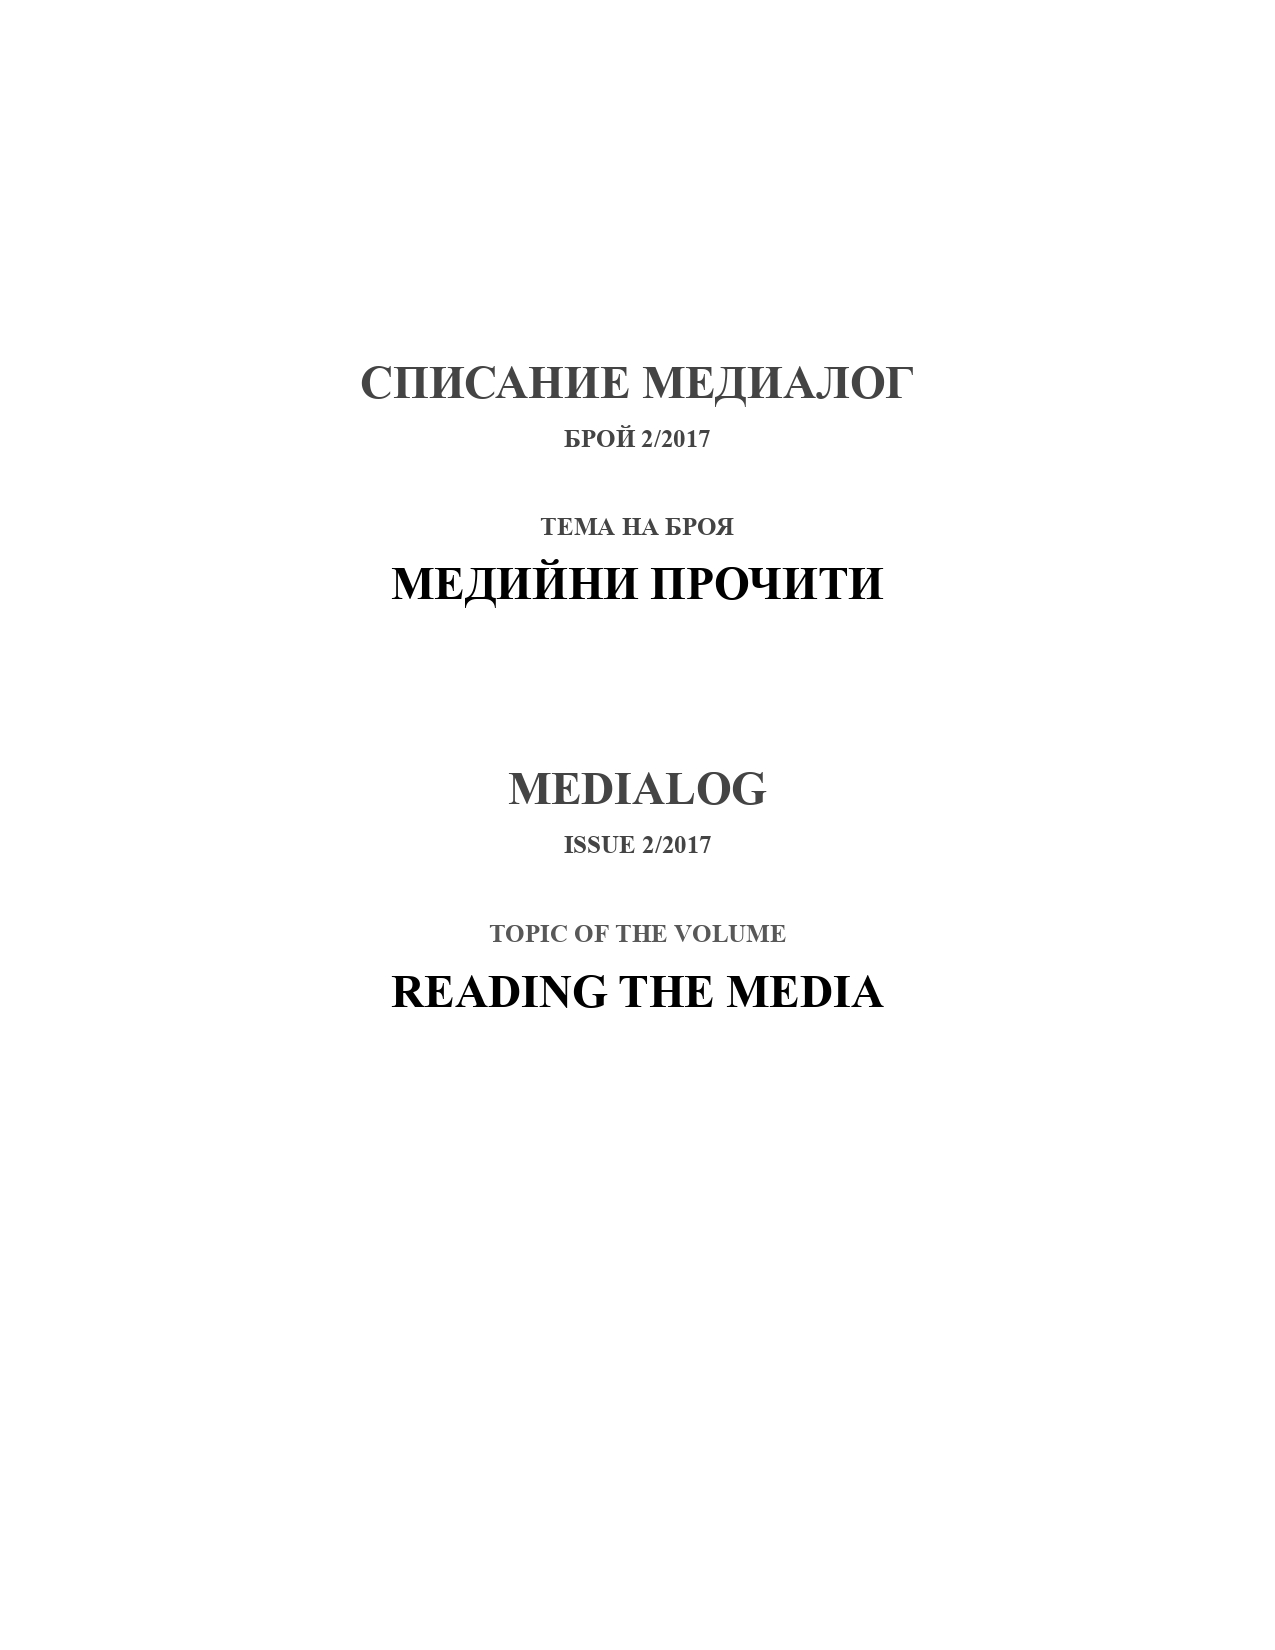 Fact and fiction in the creation of media heroes Cover Image